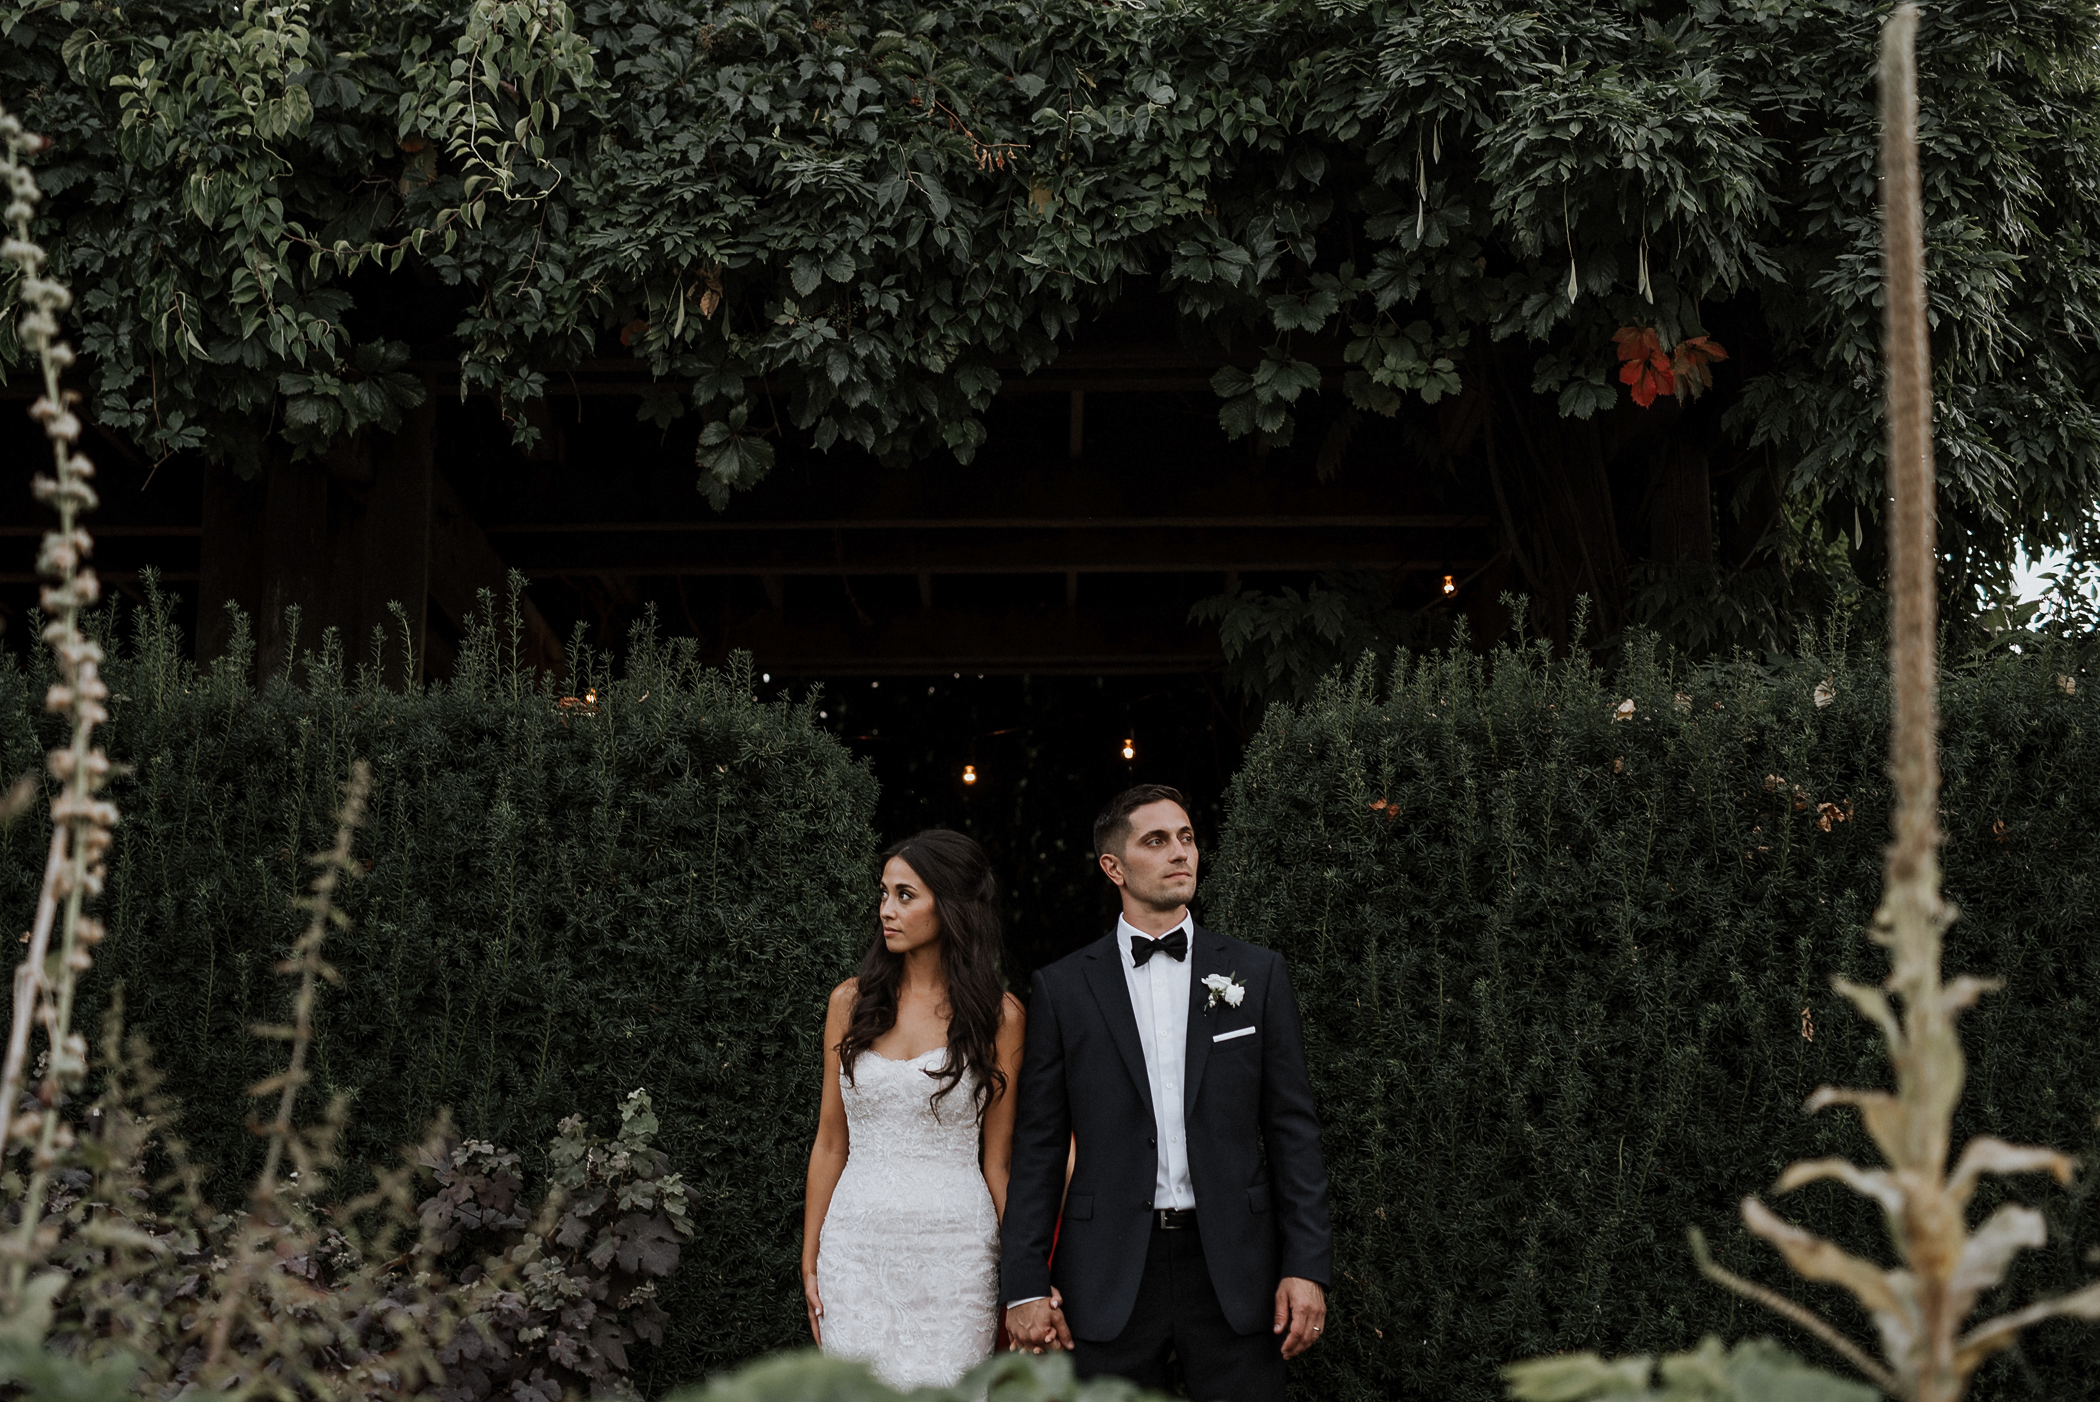 157-kaoverii-silva-SJ-wedding-ubc-botanical-garden-photography-blog.png